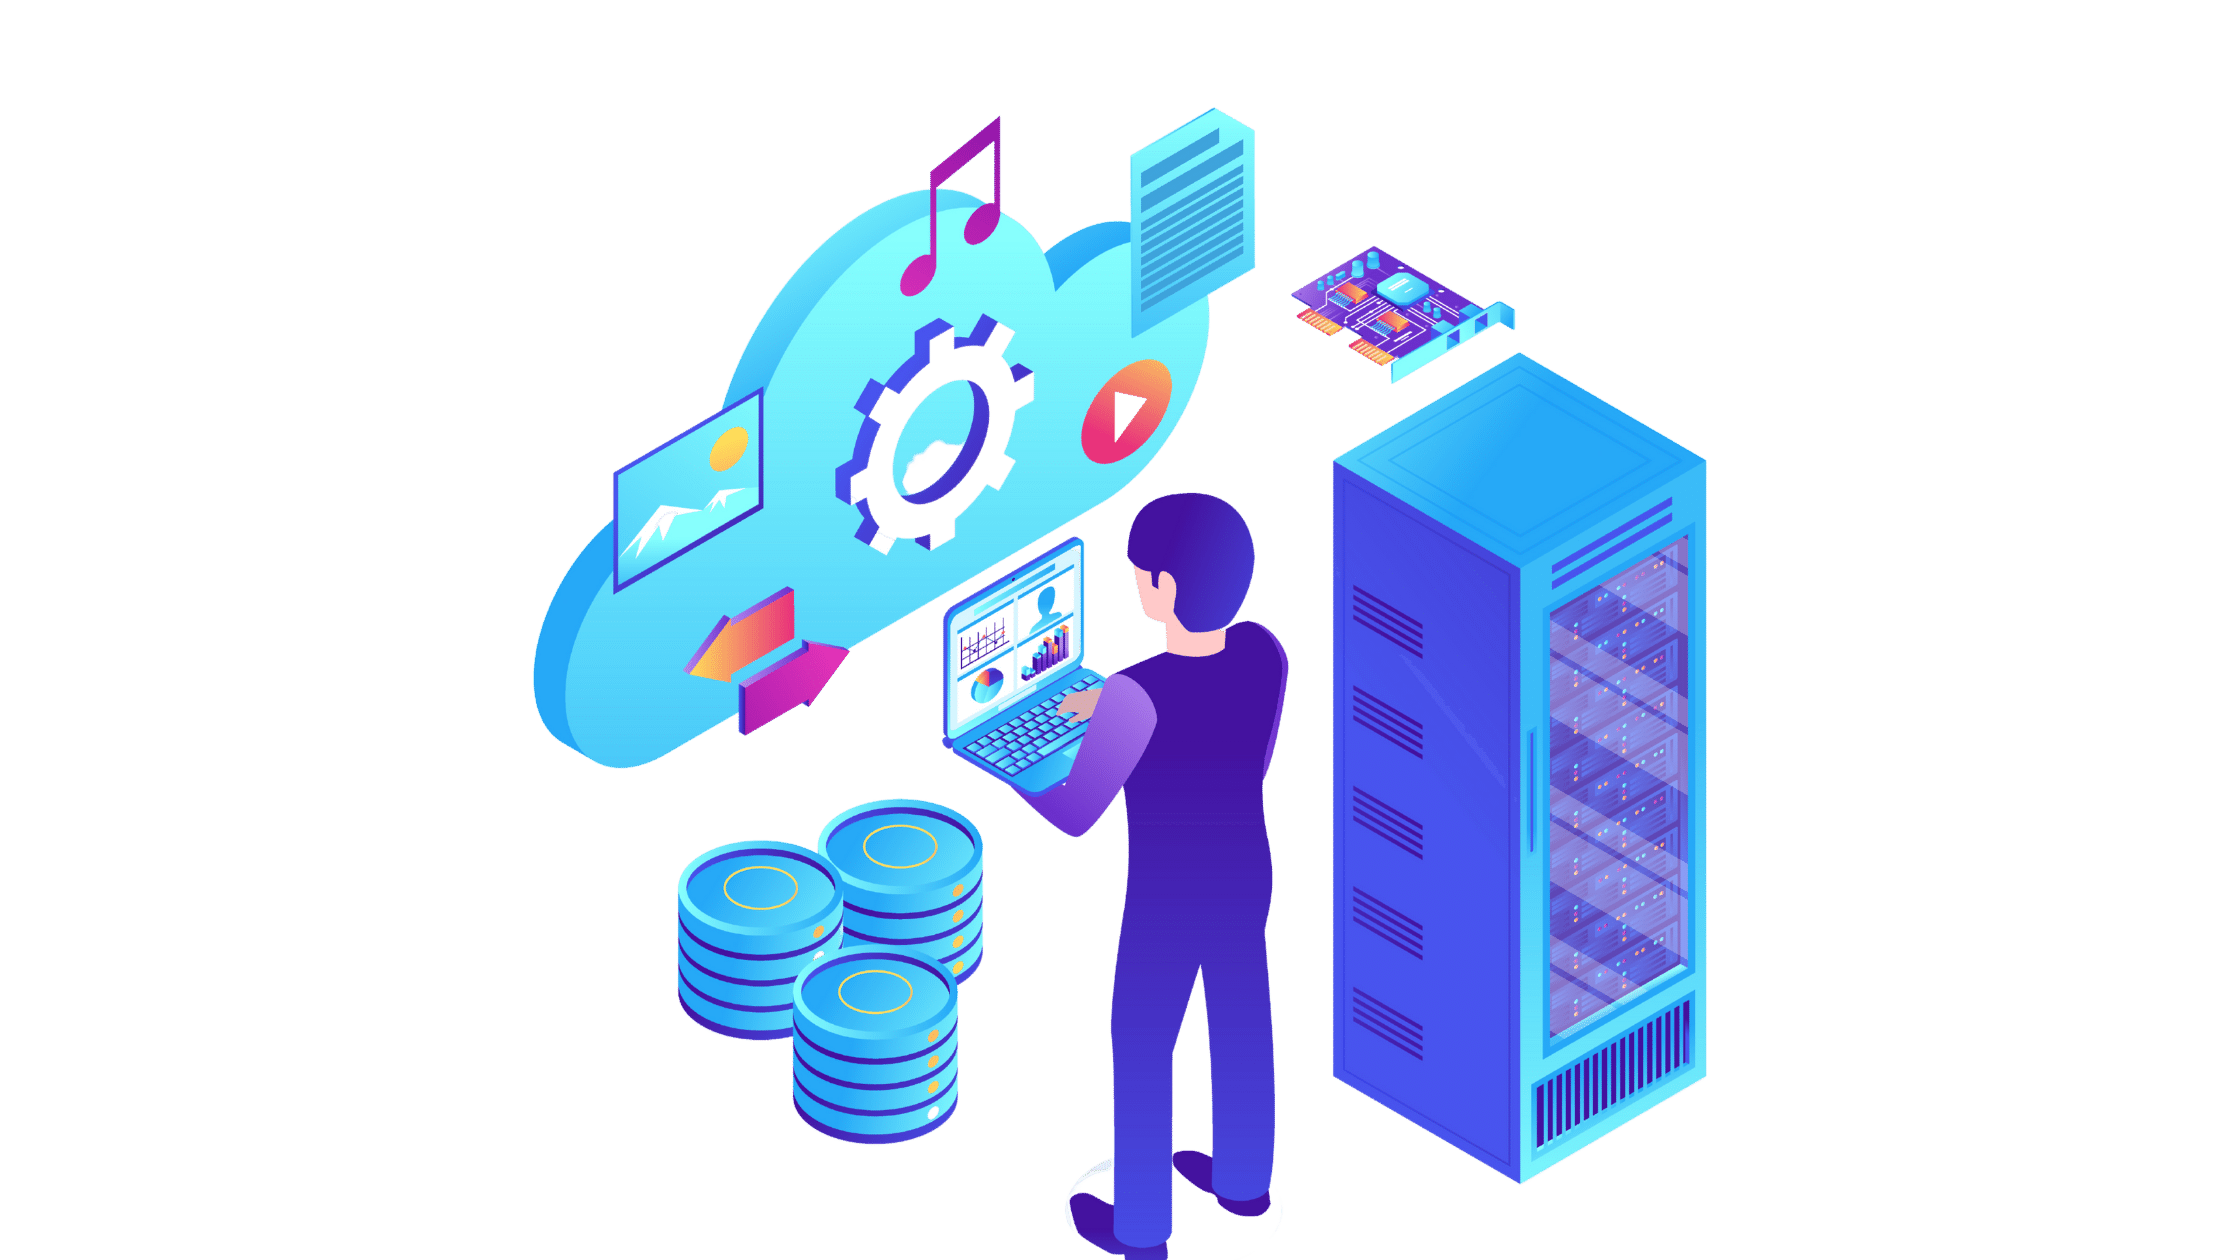 aws manufacturing industry cloud